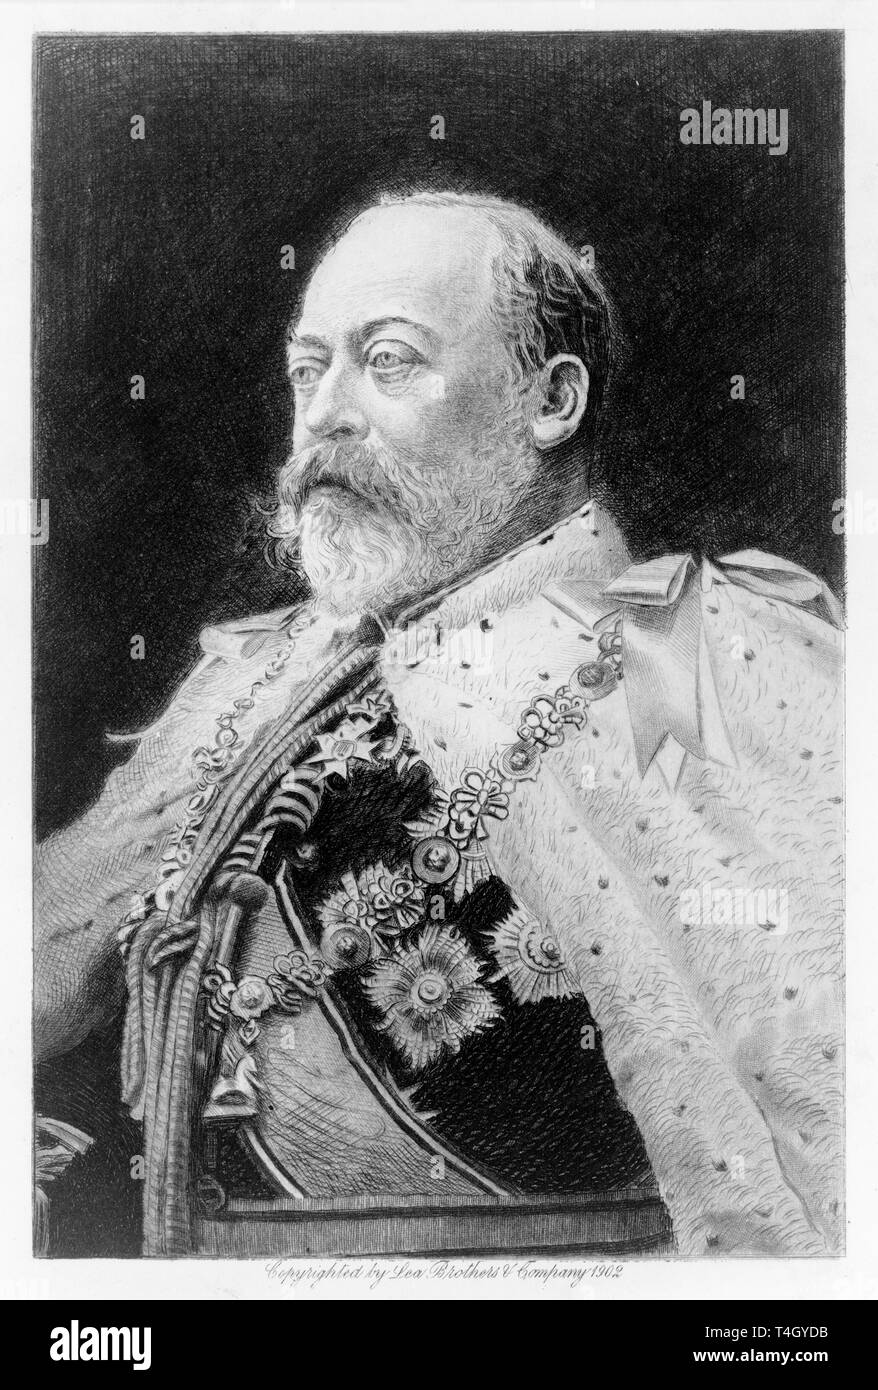 King Edward VII, portrait etching by Franz Raubicheck, 1901 - Stock Image